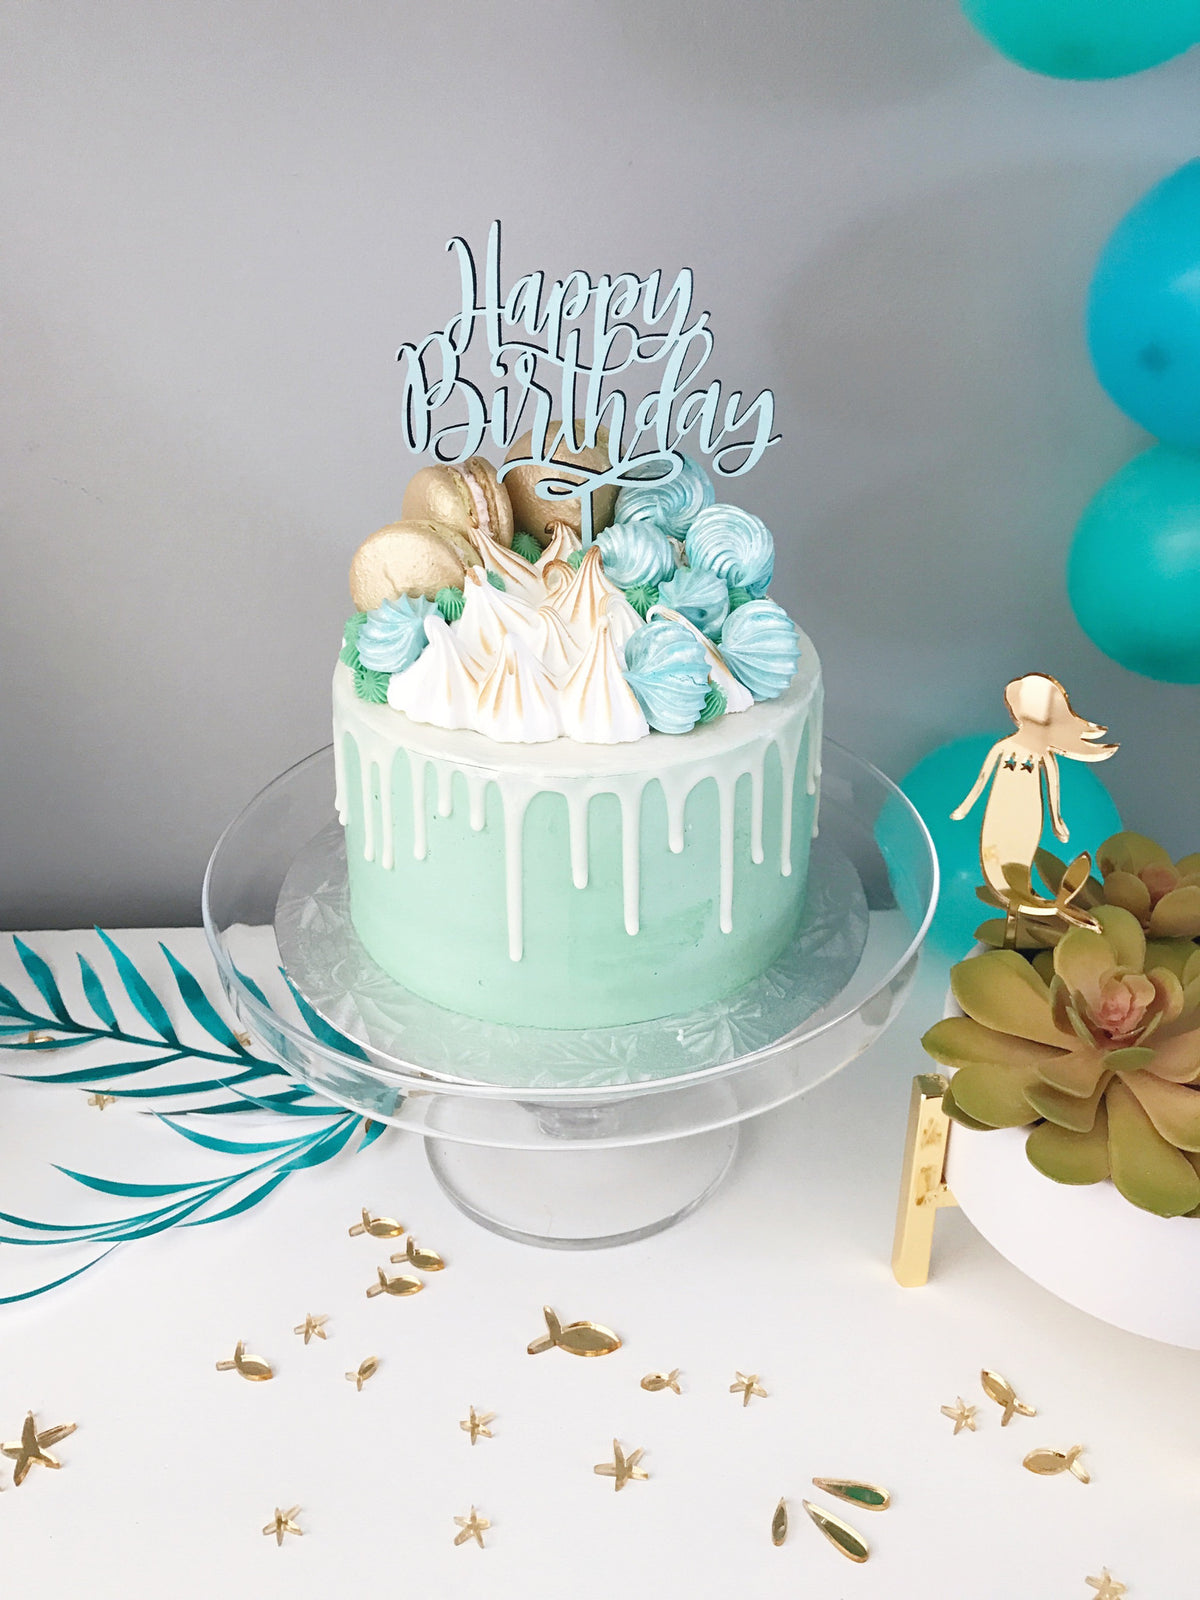 Incredible Happy Birthday Cake Topper Justine Ma Funny Birthday Cards Online Sheoxdamsfinfo